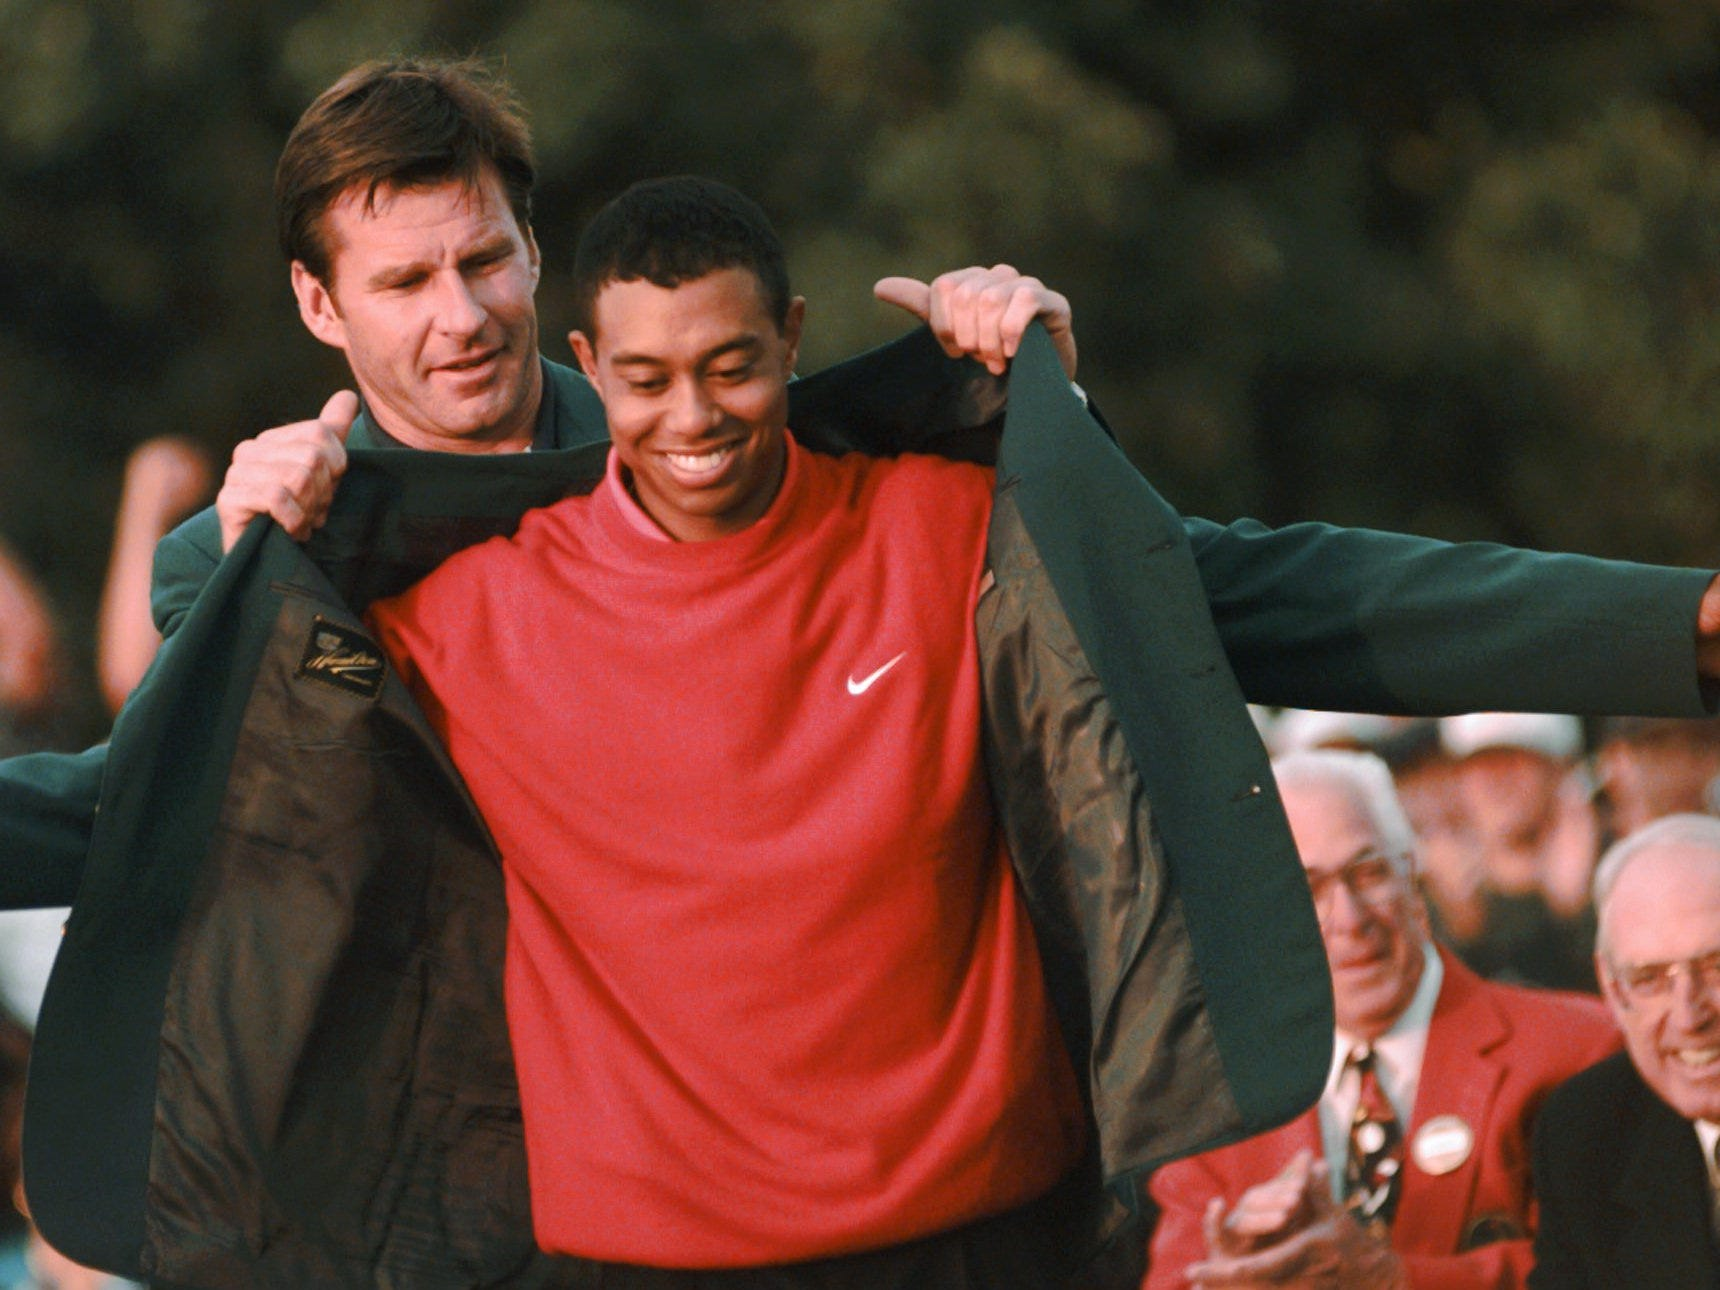 On April 13, 1997, Tiger Woods receives his first green jacket as Masters champion from Nick Faldo at Augusta National Golf Club.